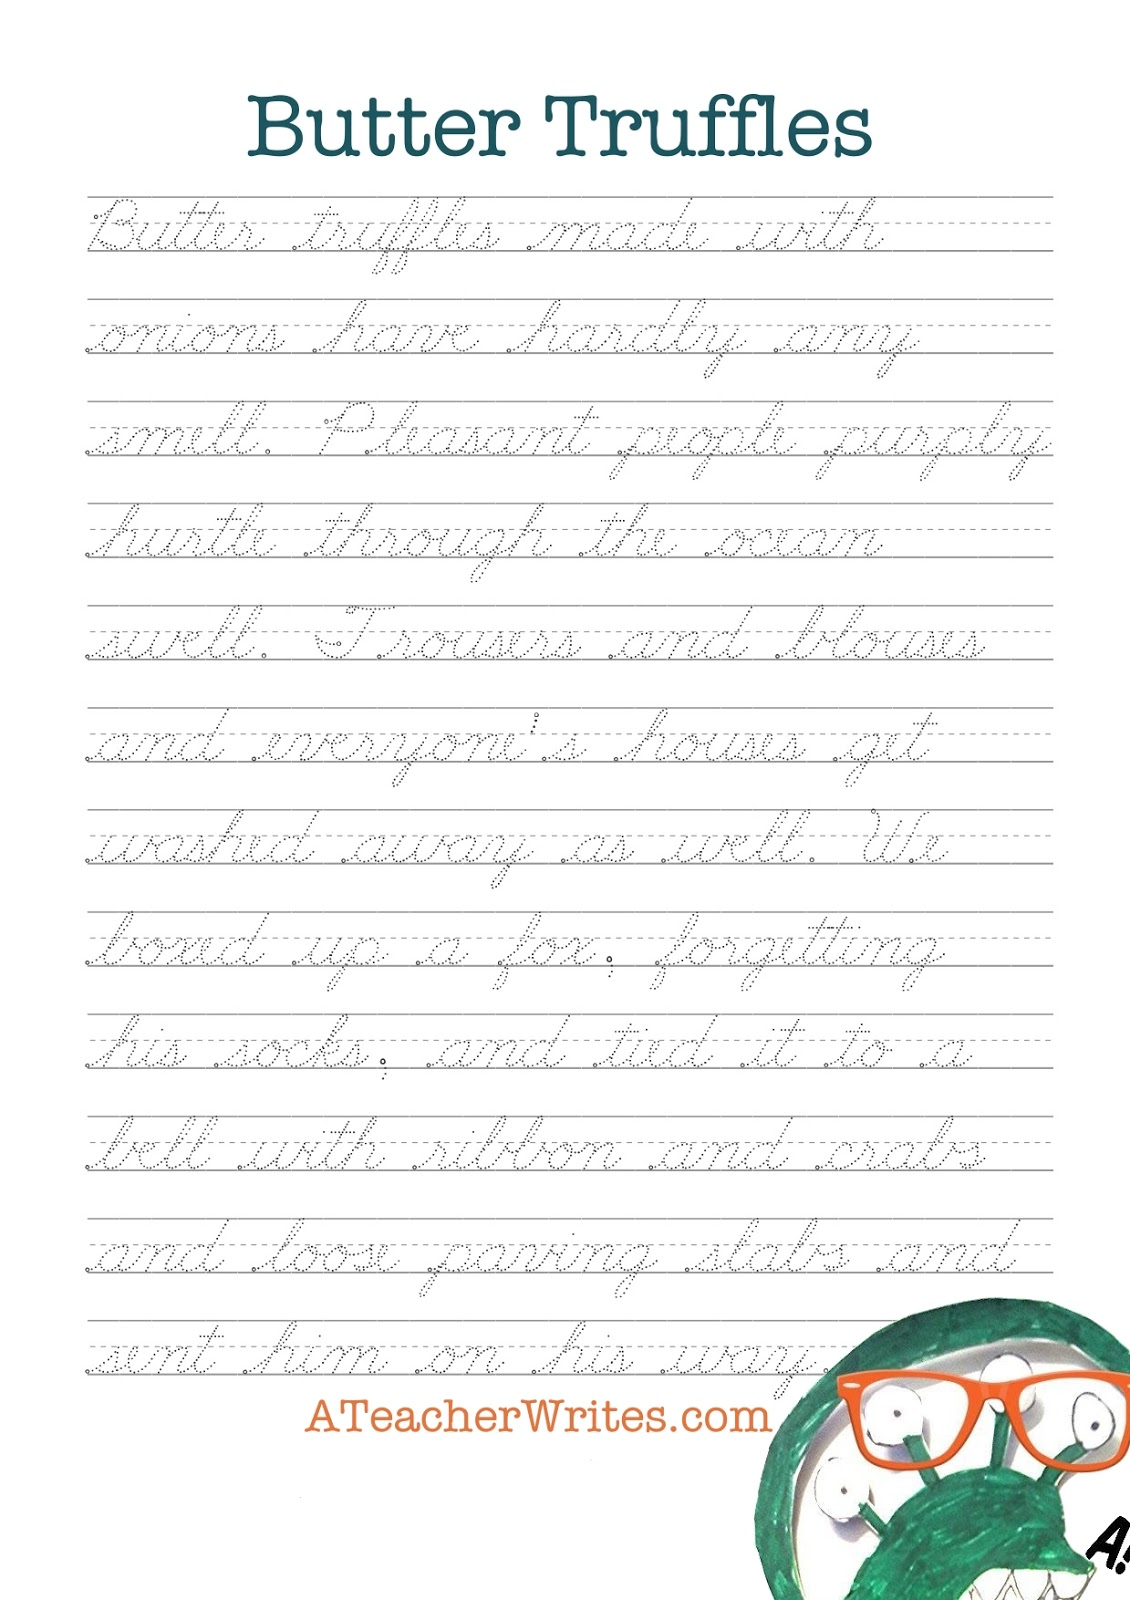 Curvelearn Free Handwriting Worksheets With Video